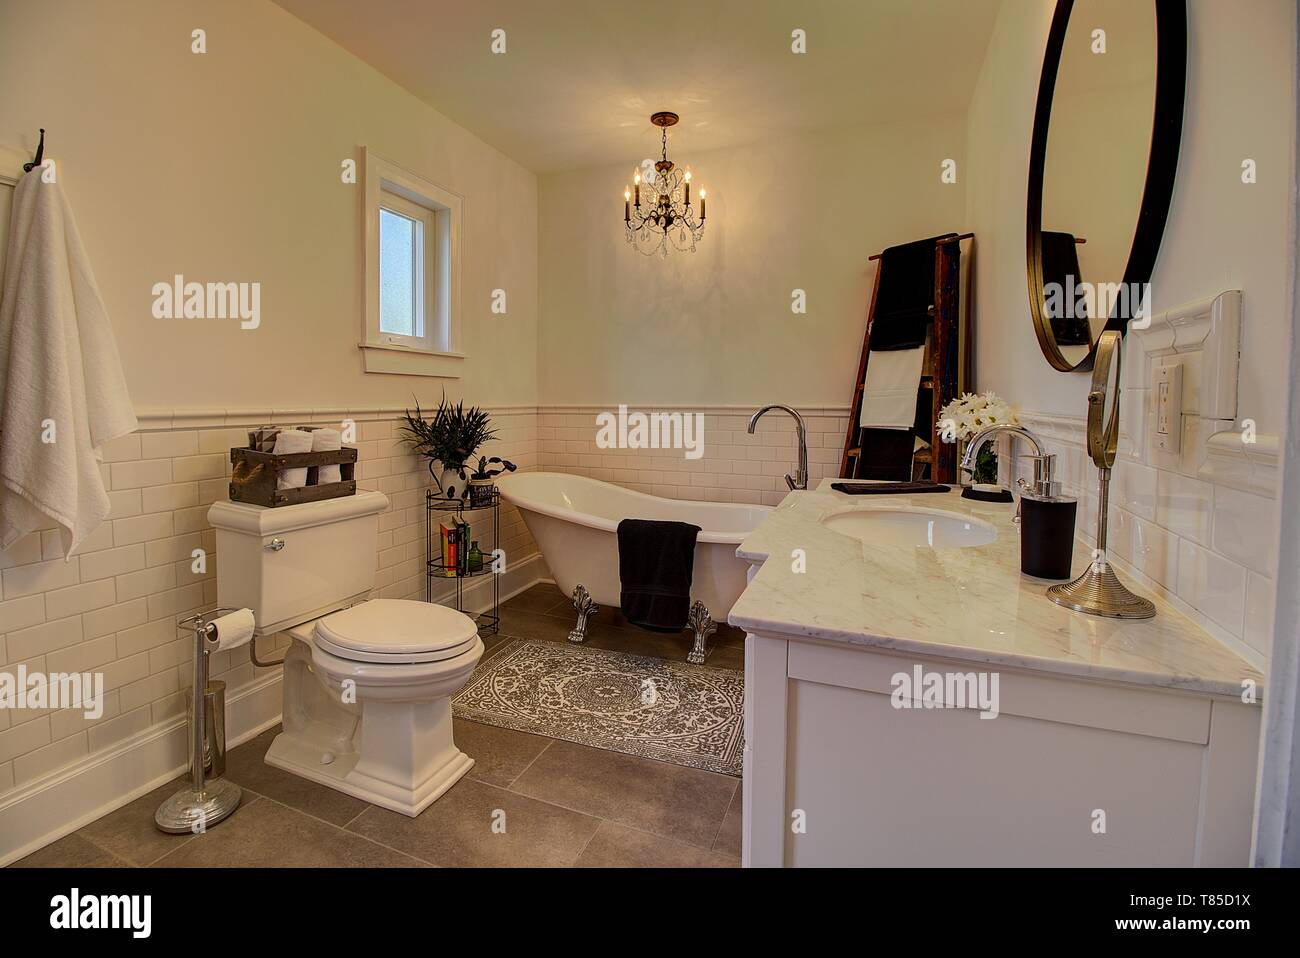 Newly renovated bathroom with claw foot tub and subway tile. - Stock Image